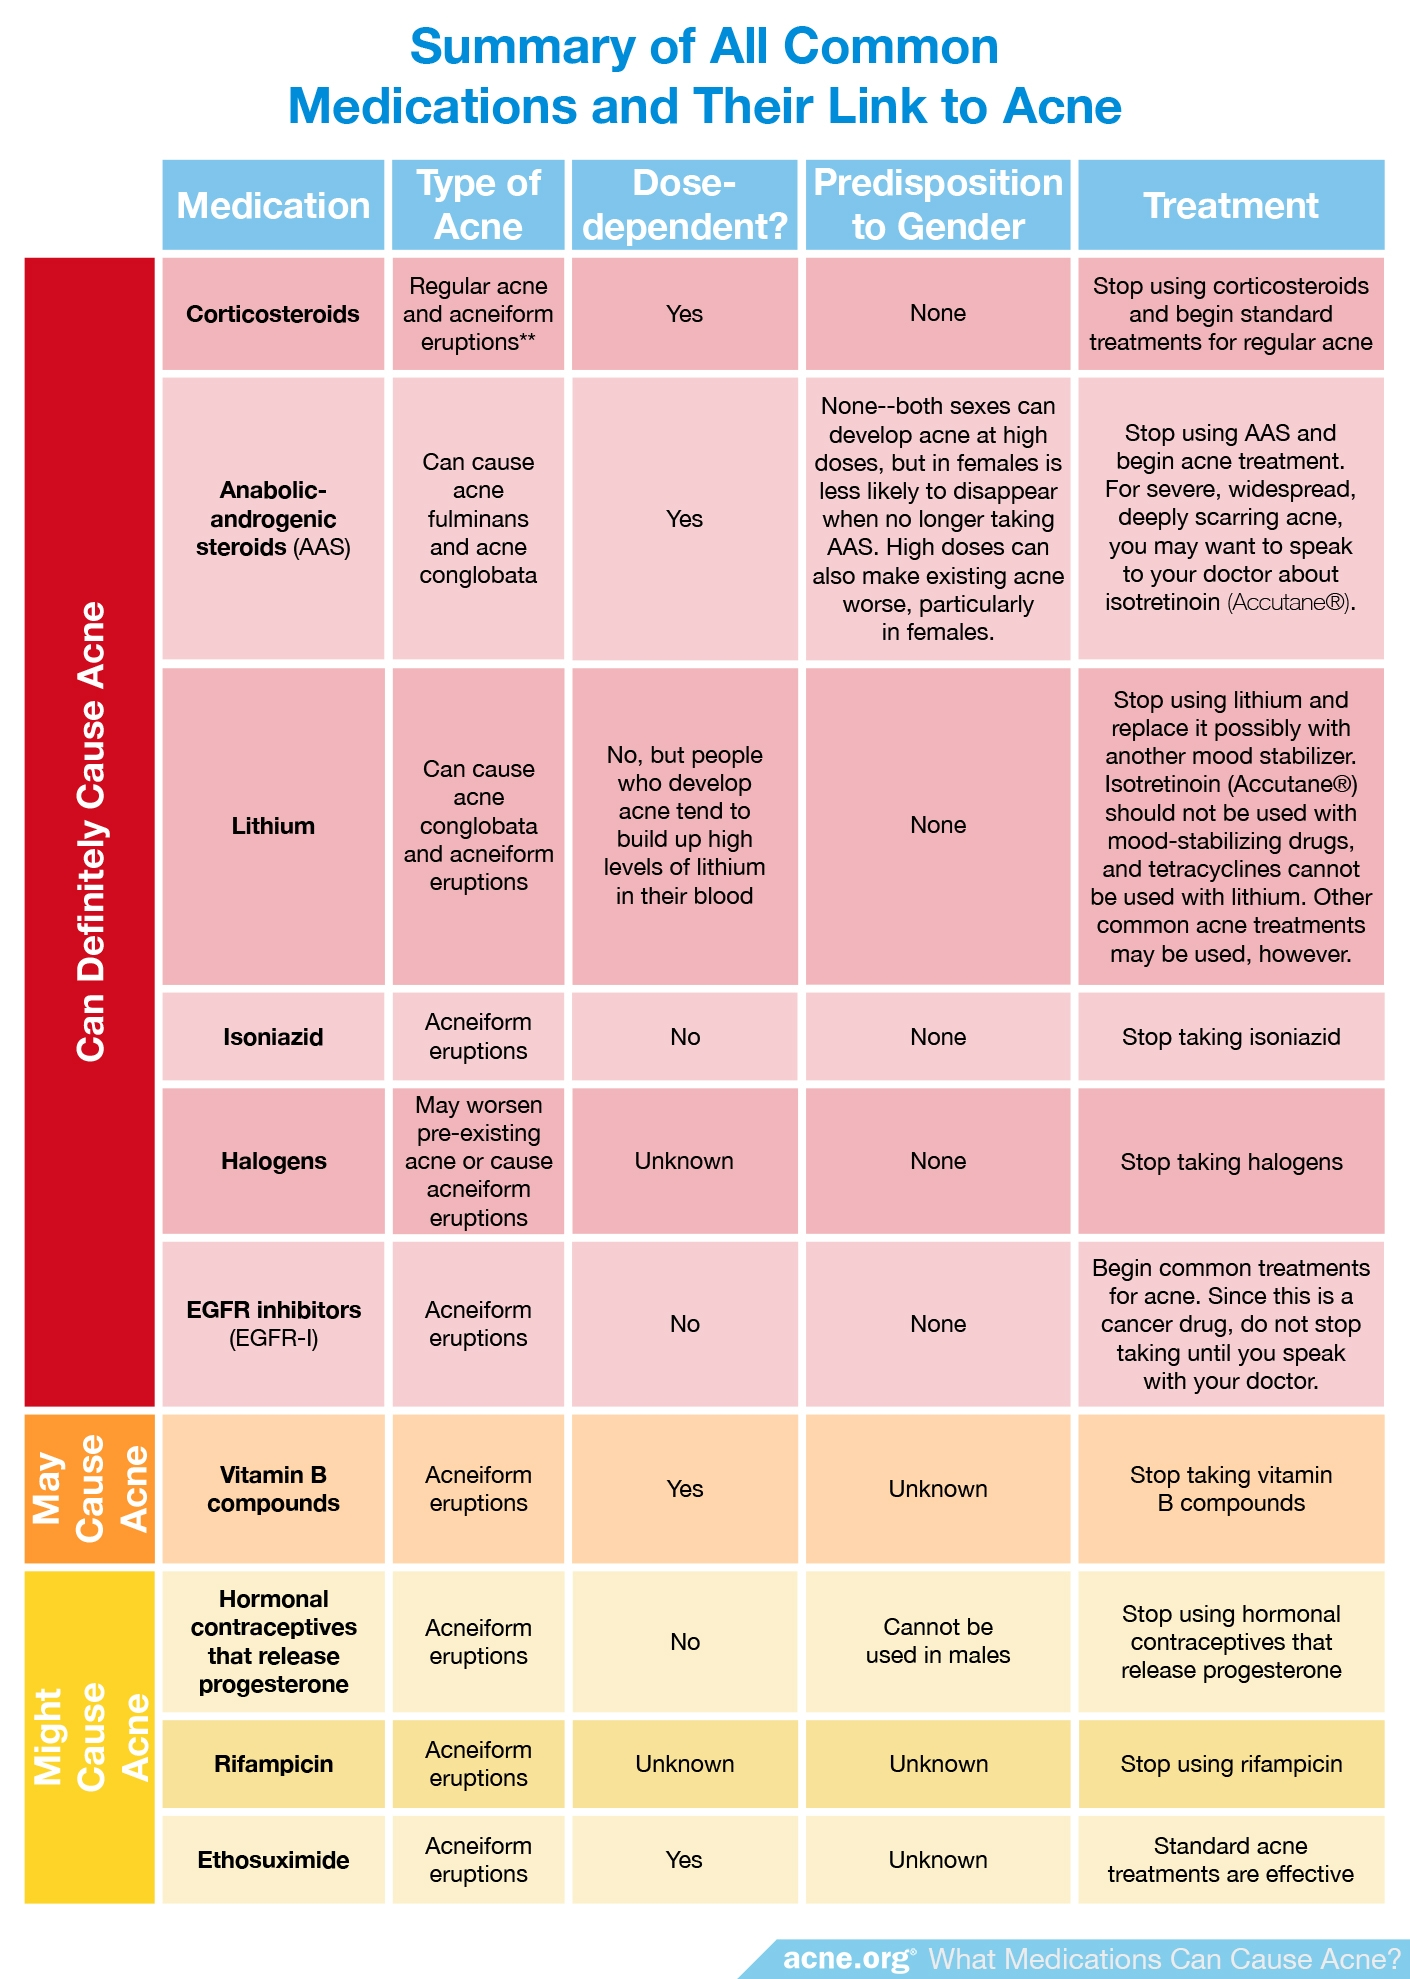 Summary of All Common Medications and Their Link to Acne